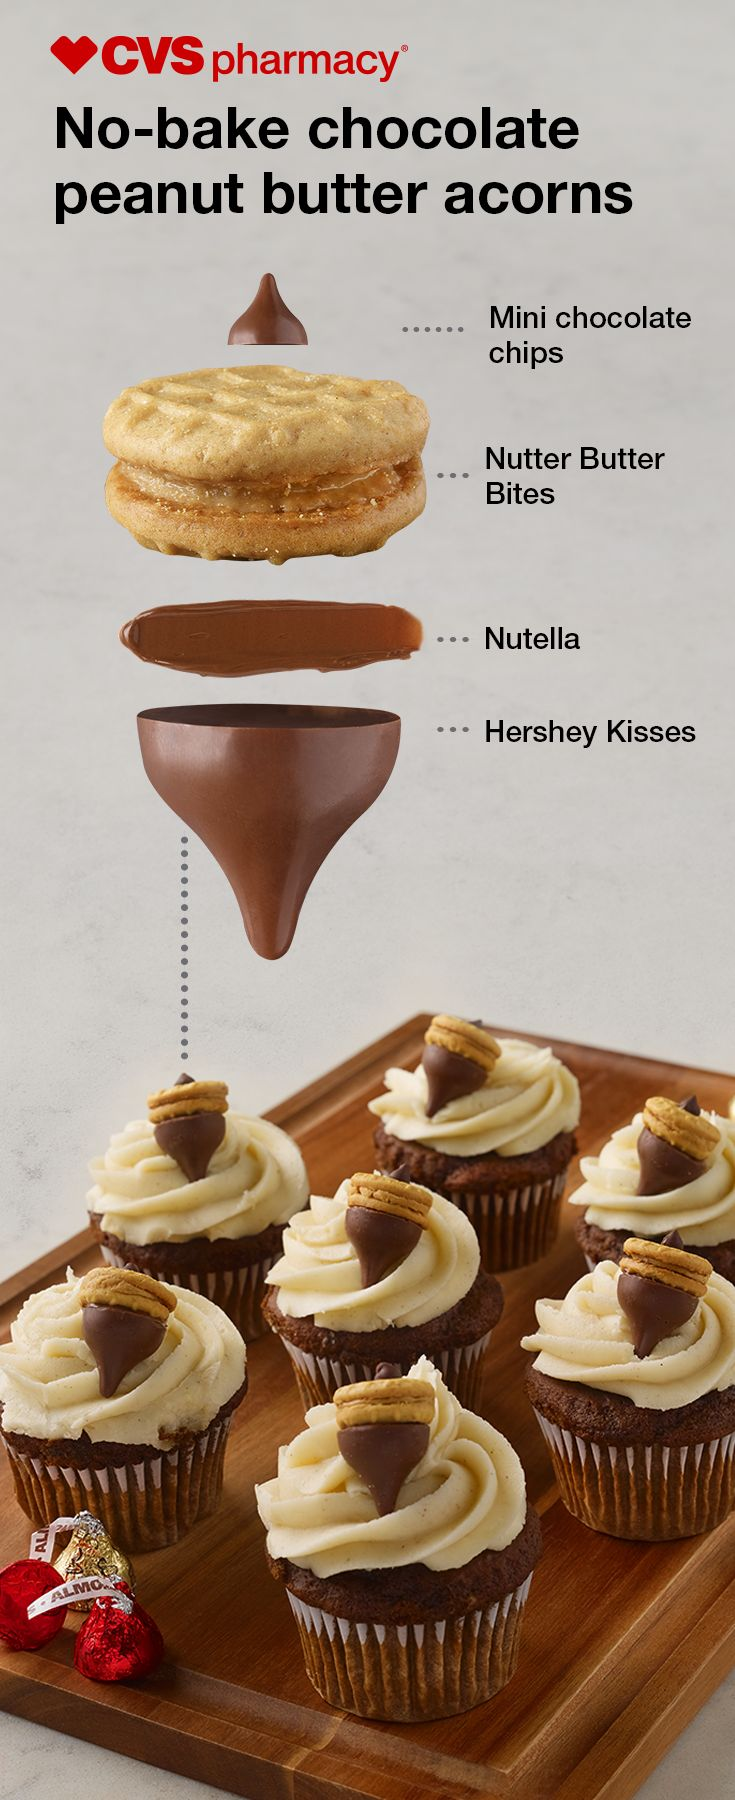 Add some fall flair to otherwise ordinary cupcakes by topping them with no-bake chocolate peanut butter acorns. Just spread some Nutella on a Nutter Butter Bite, then press on a Hershey's Kiss. Add a mini chocolate chip on the other side for the acorn stem. Finally, pop them into the fridge to allow them to harden before setting them on top of your cupcakes! Get everything you need to make this sweet Thanksgiving treat at CVS Pharmacy®.